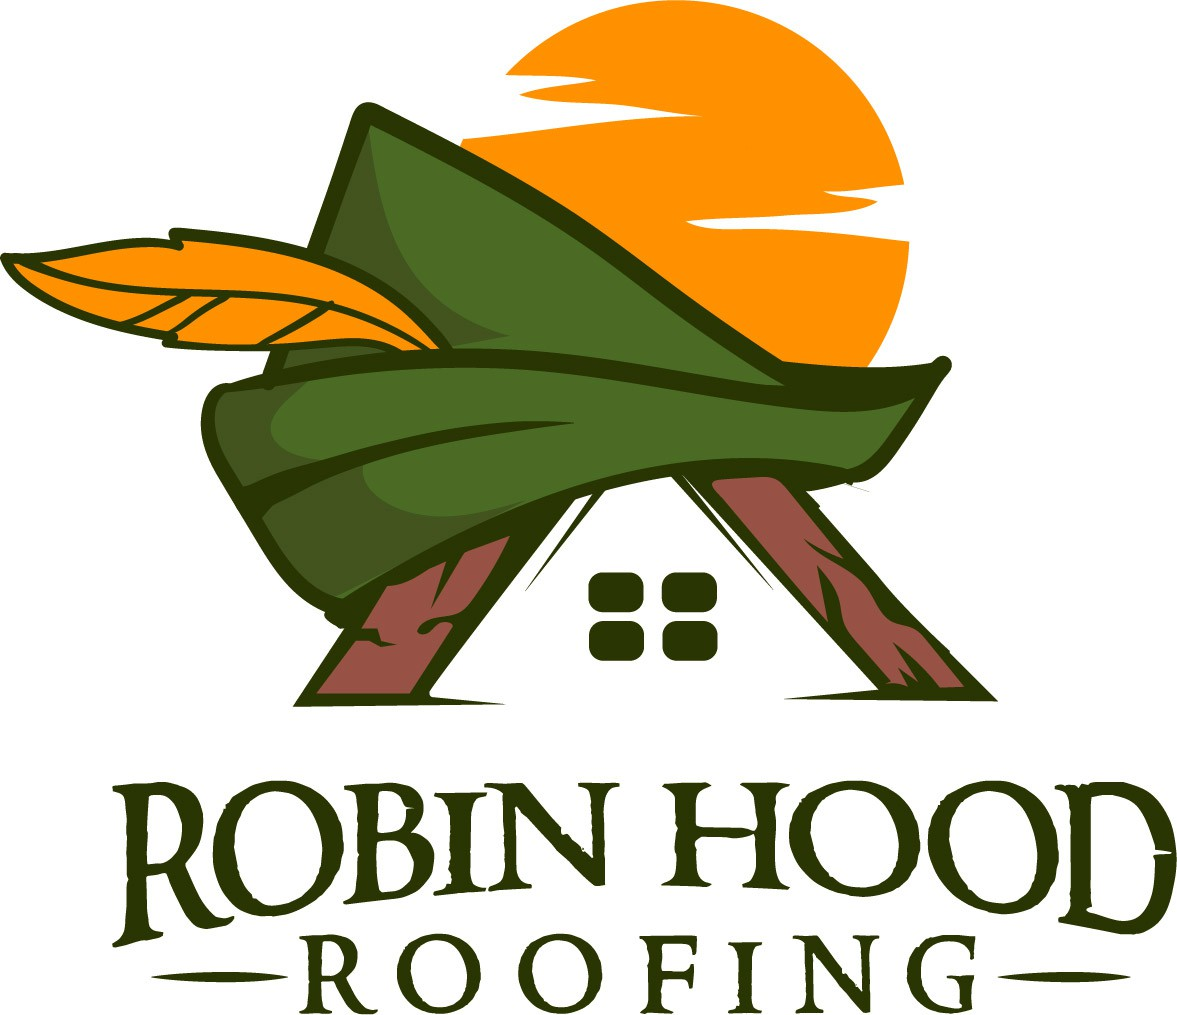 Take aim at a great logo for Robin Hood Roofing